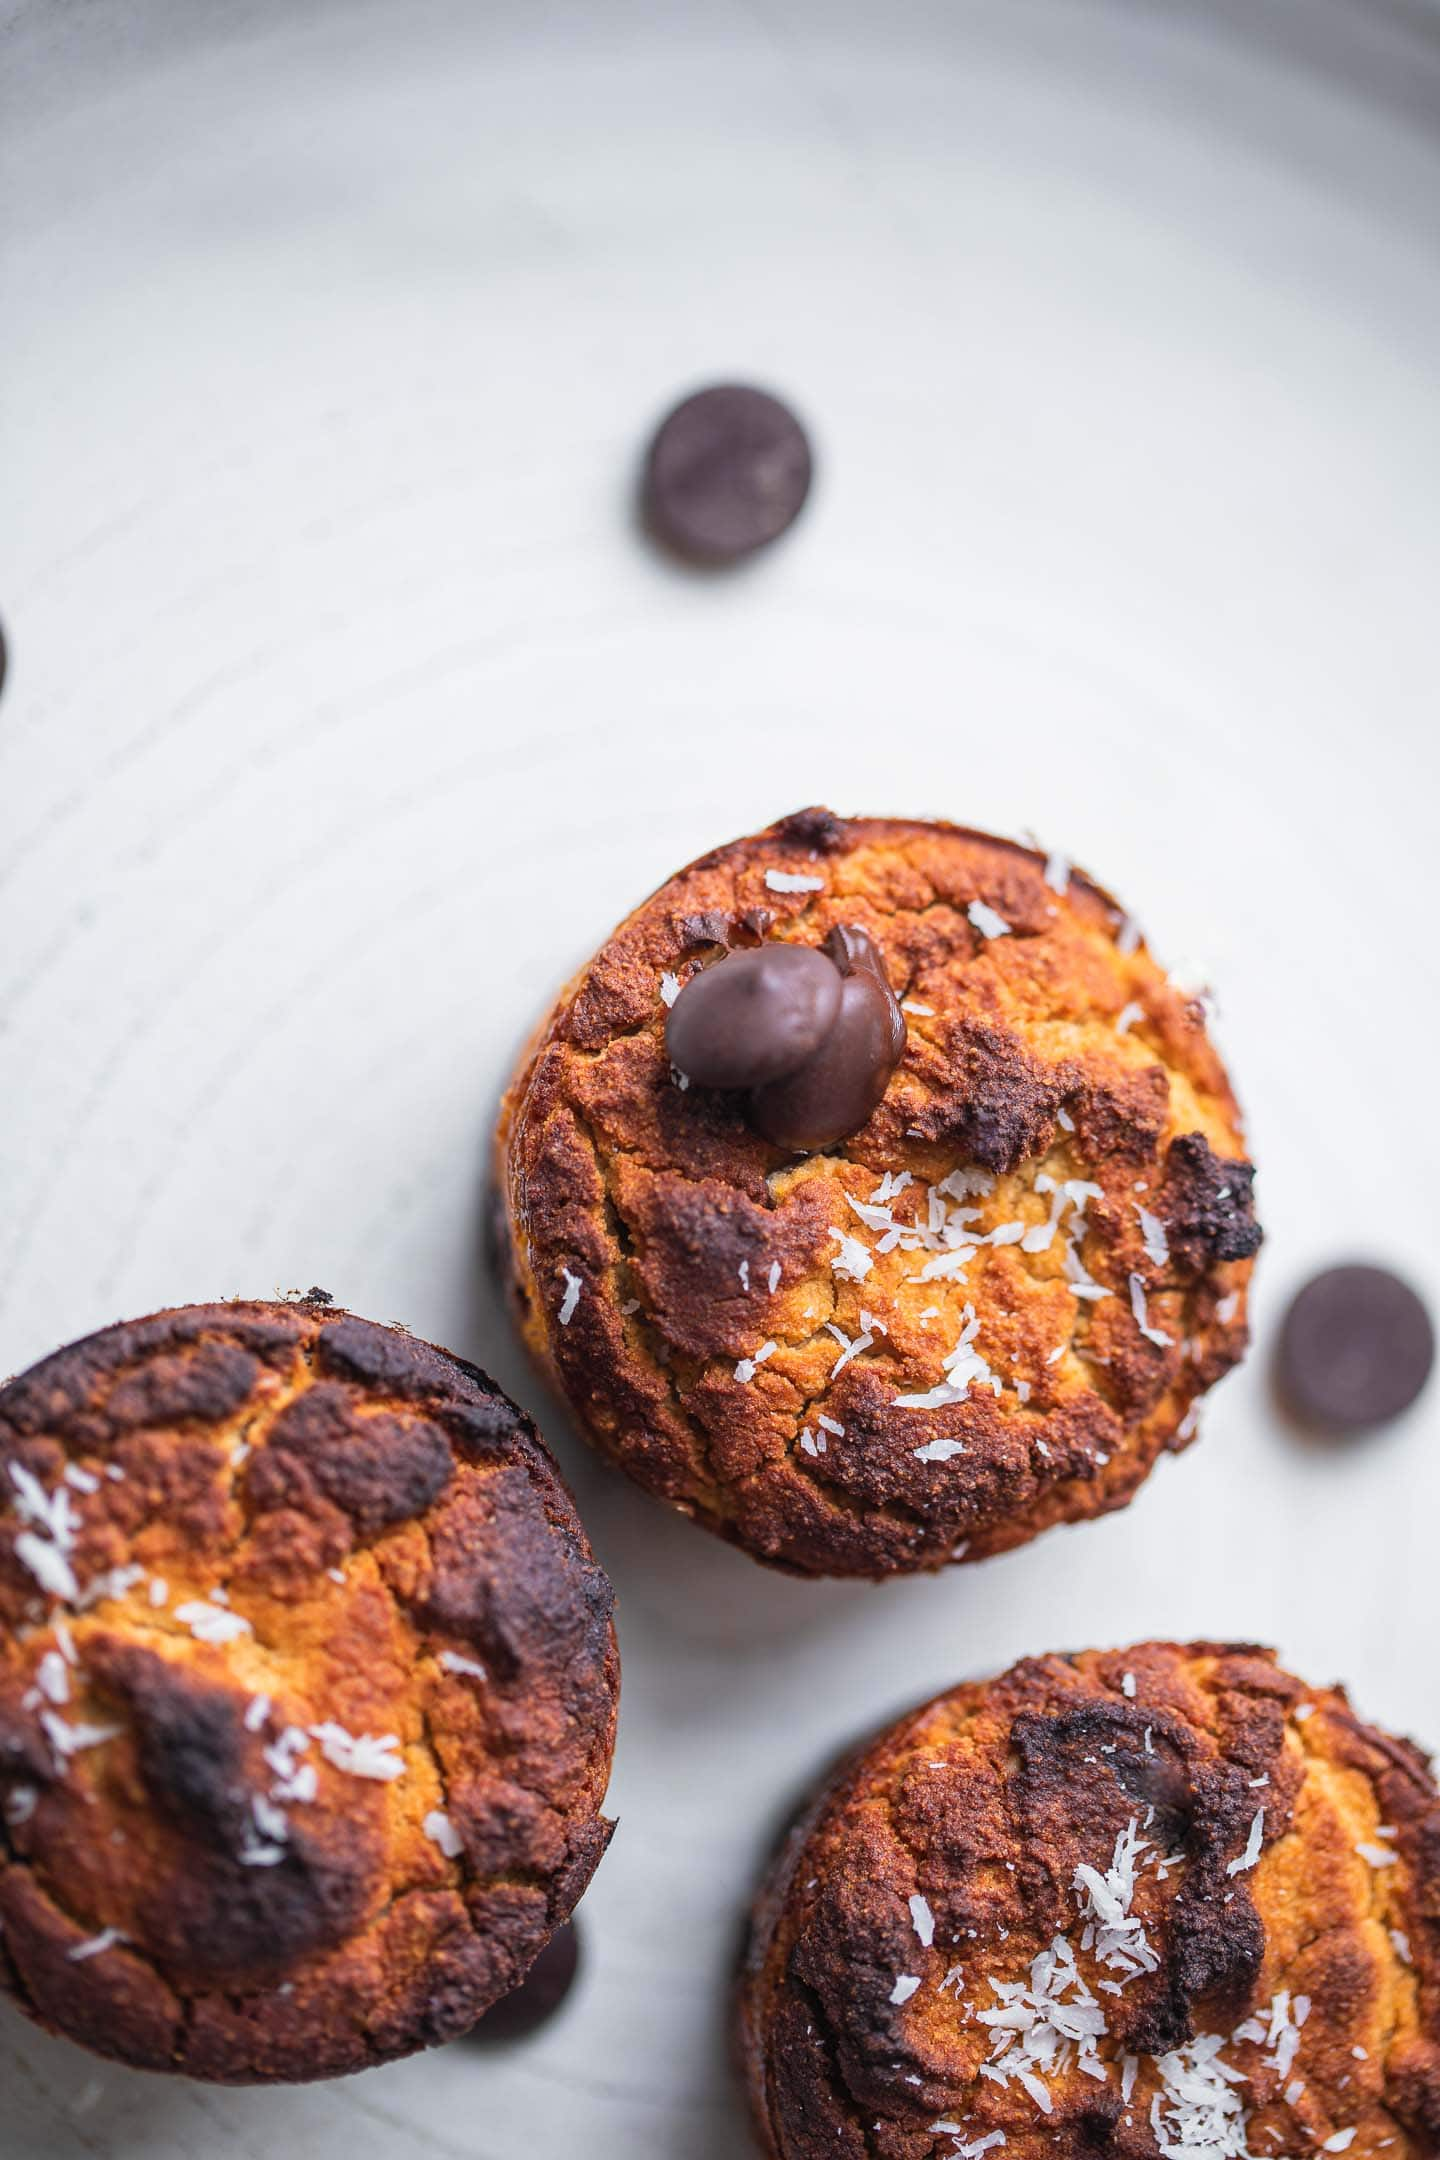 Dairy-free chocolate chip muffins on a plate